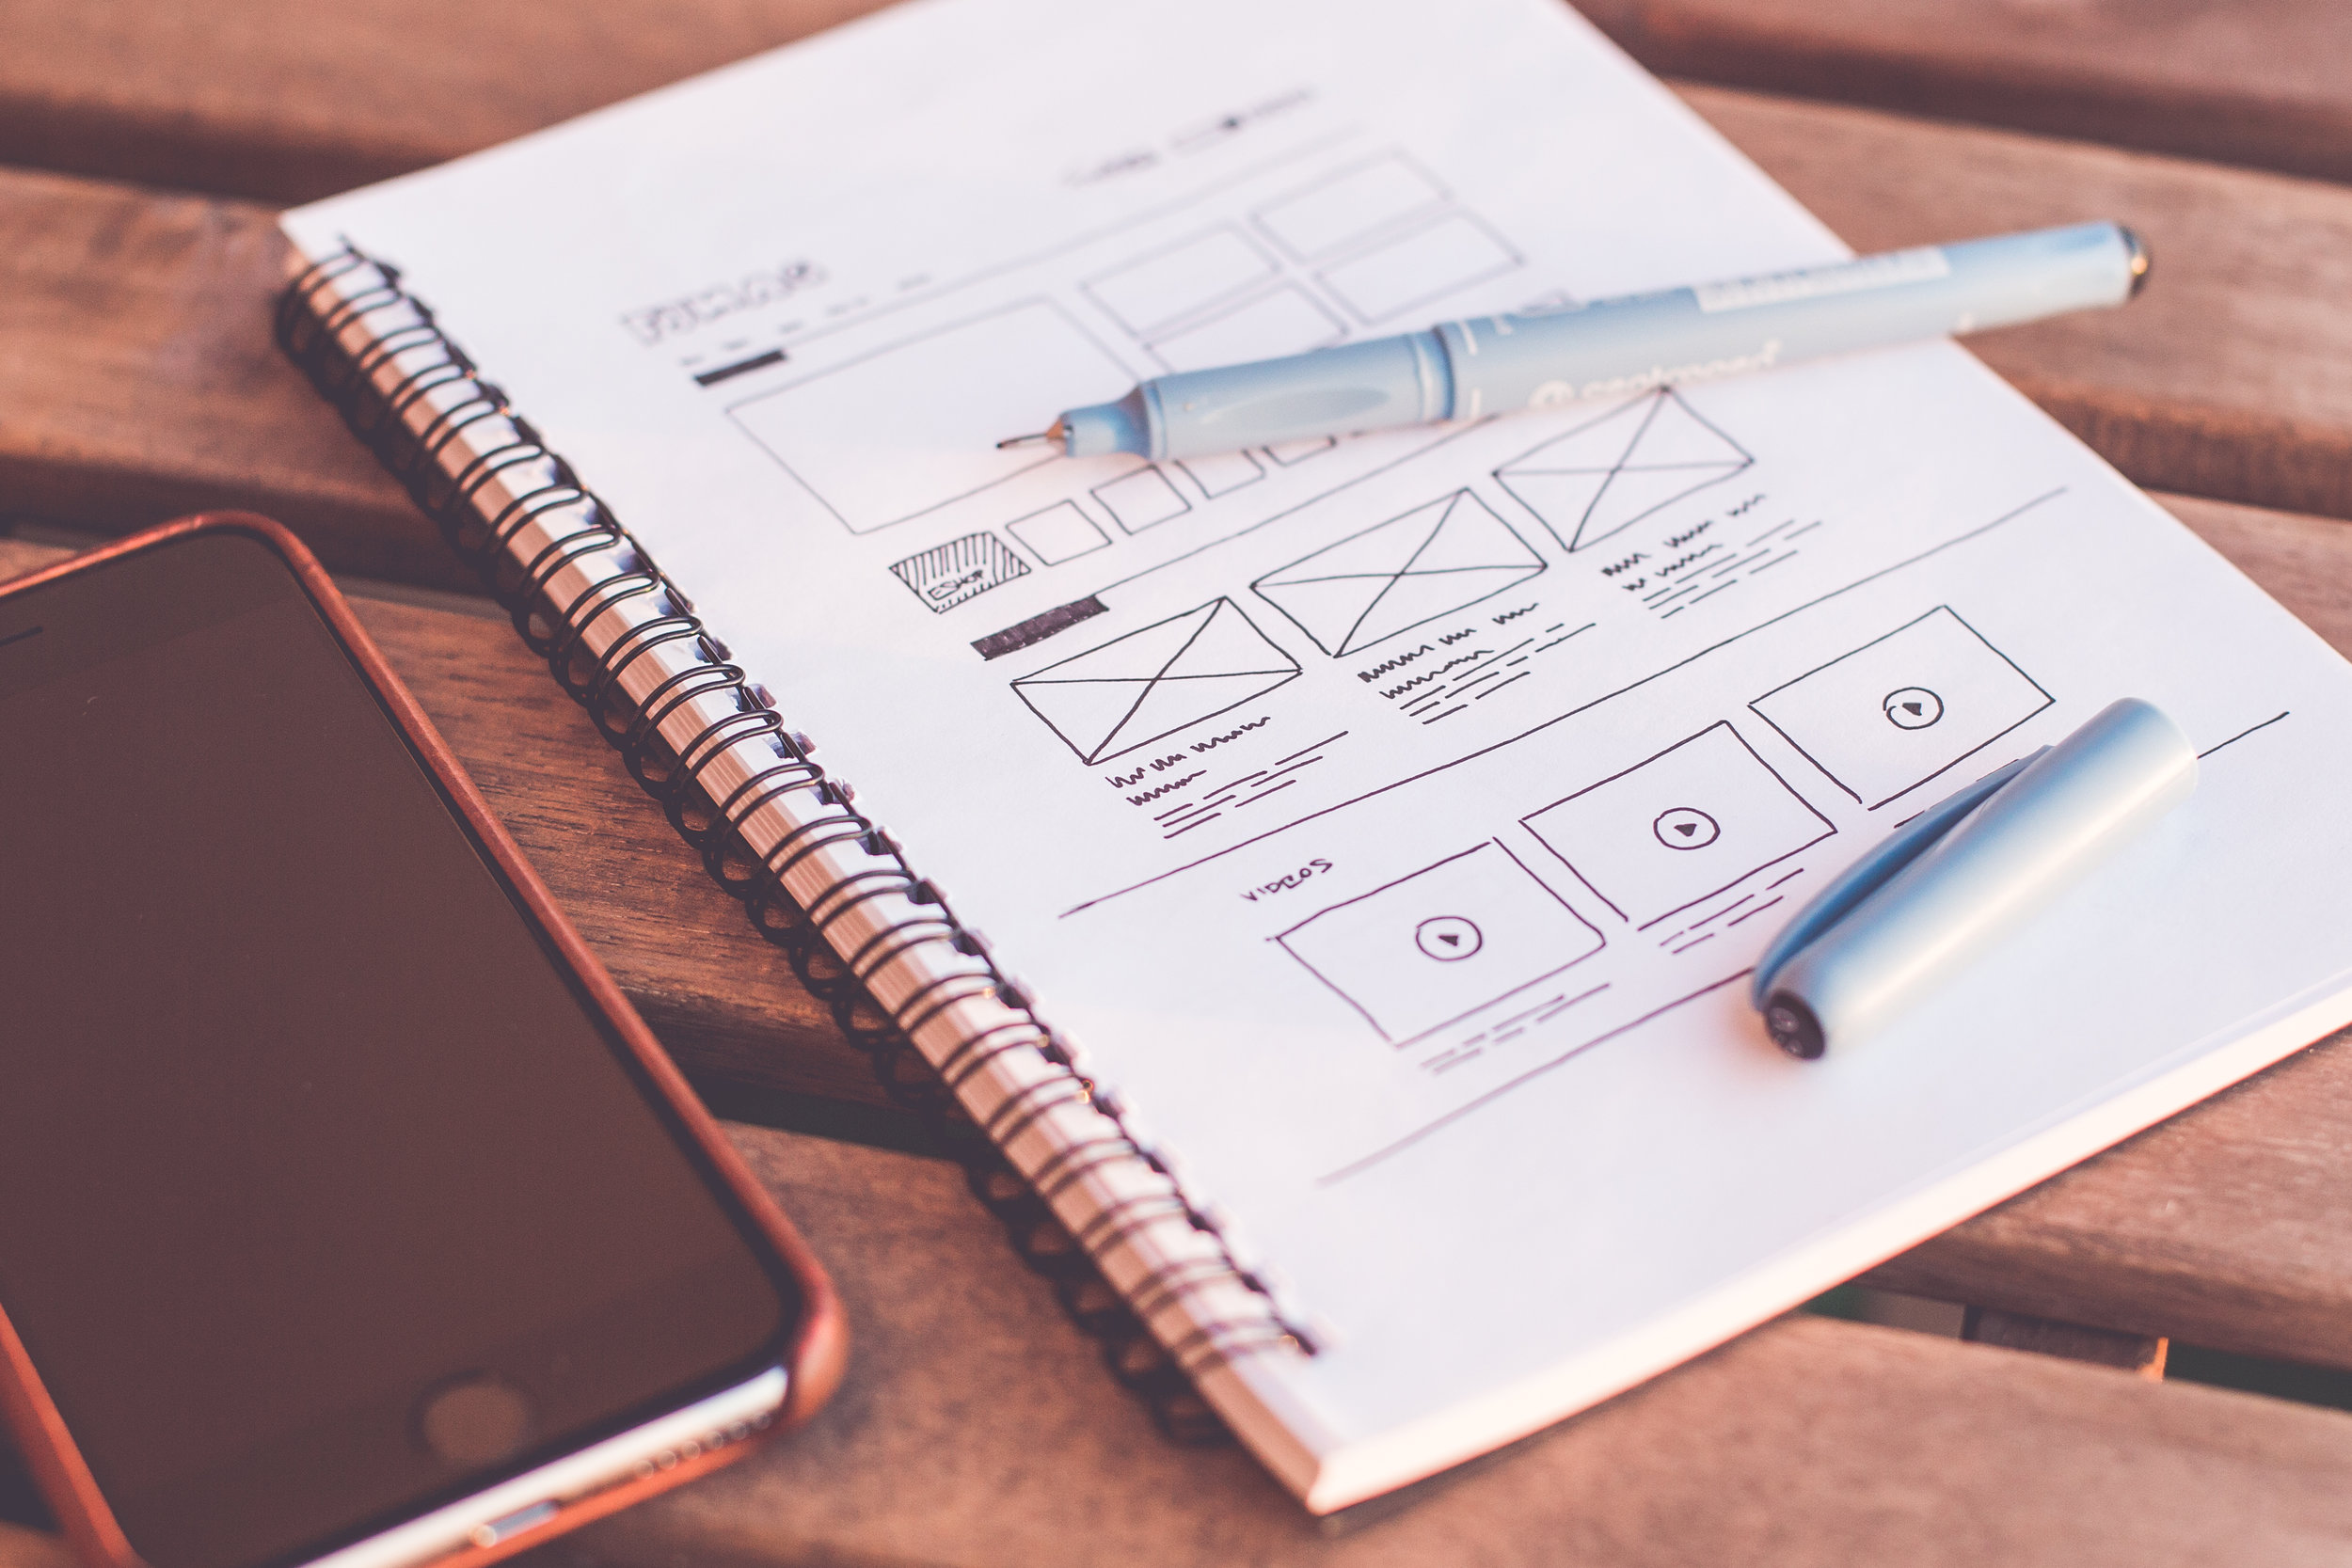 wireframe-zoning-creation-site-internet-web-portail-bouches-rhone-transport-logistique